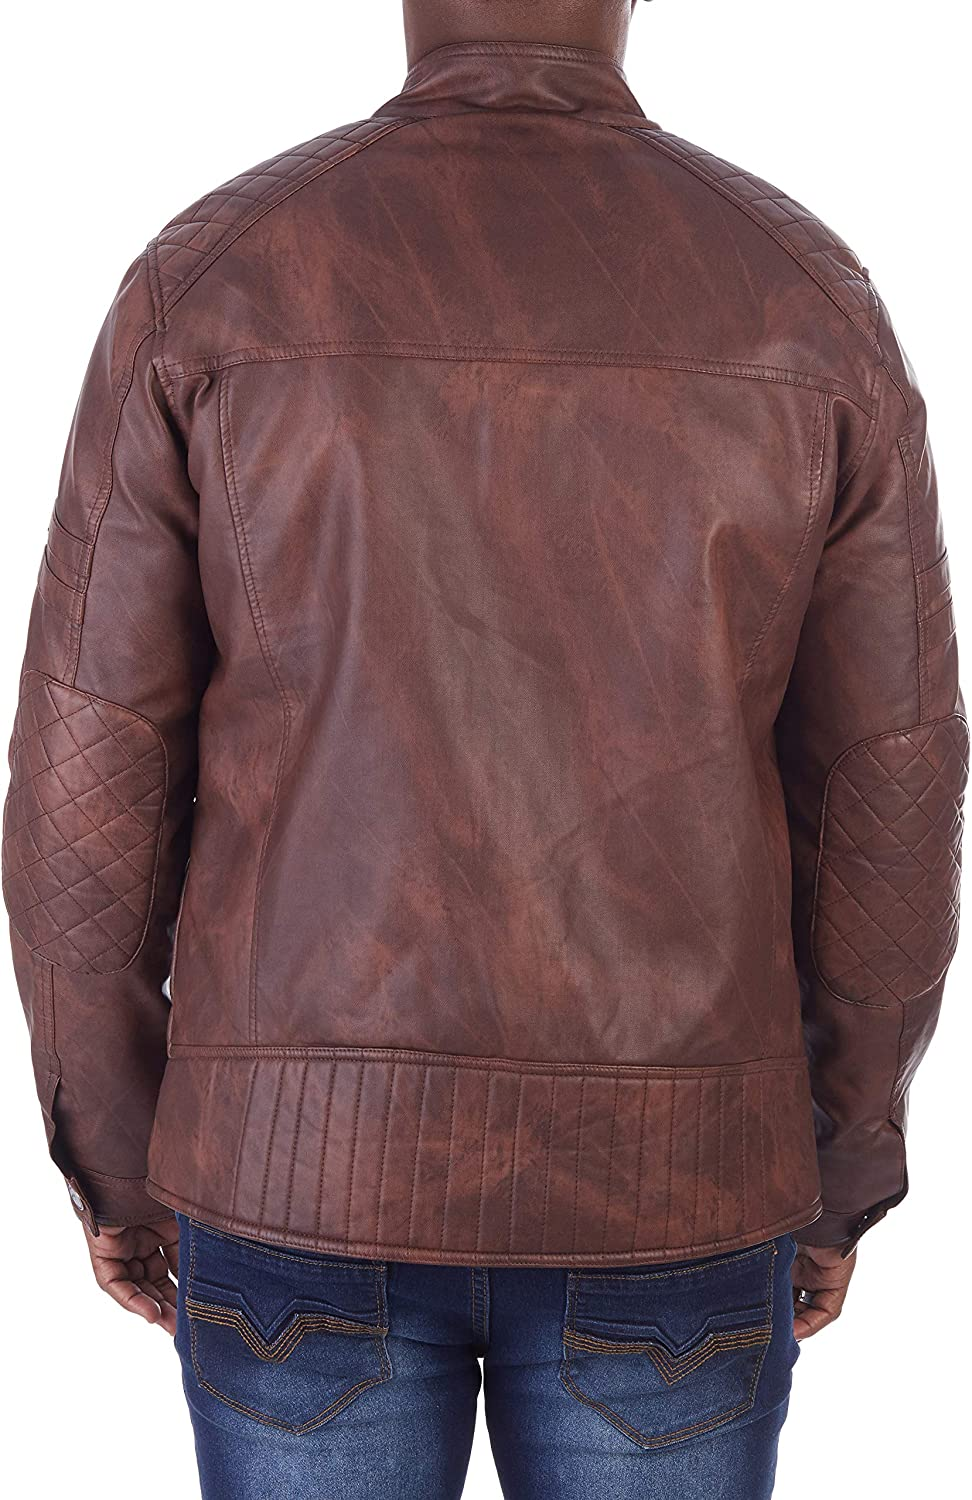 X RAY Mens PU Leather Topstitched ed Motorcycle Jacket Contrast Trim Faux Leather Jacket for Men